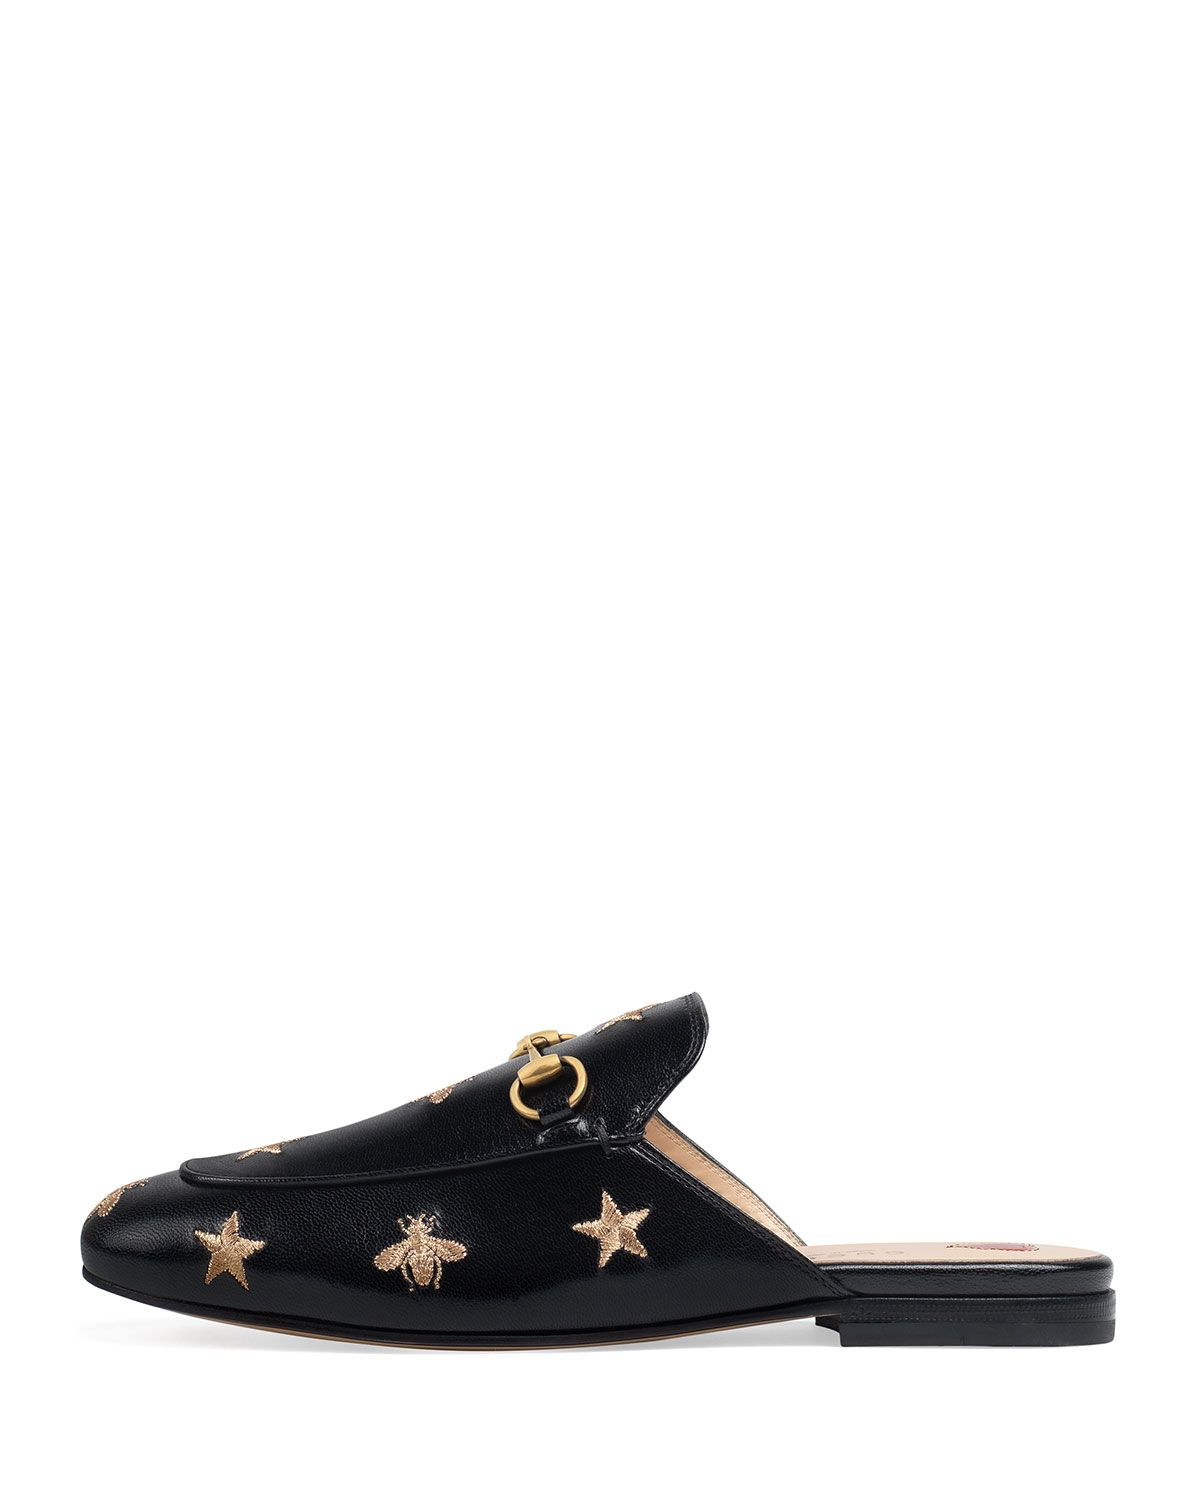 1cd8314d5ce0 Gucci Princetown Bee and Star Flat Mule